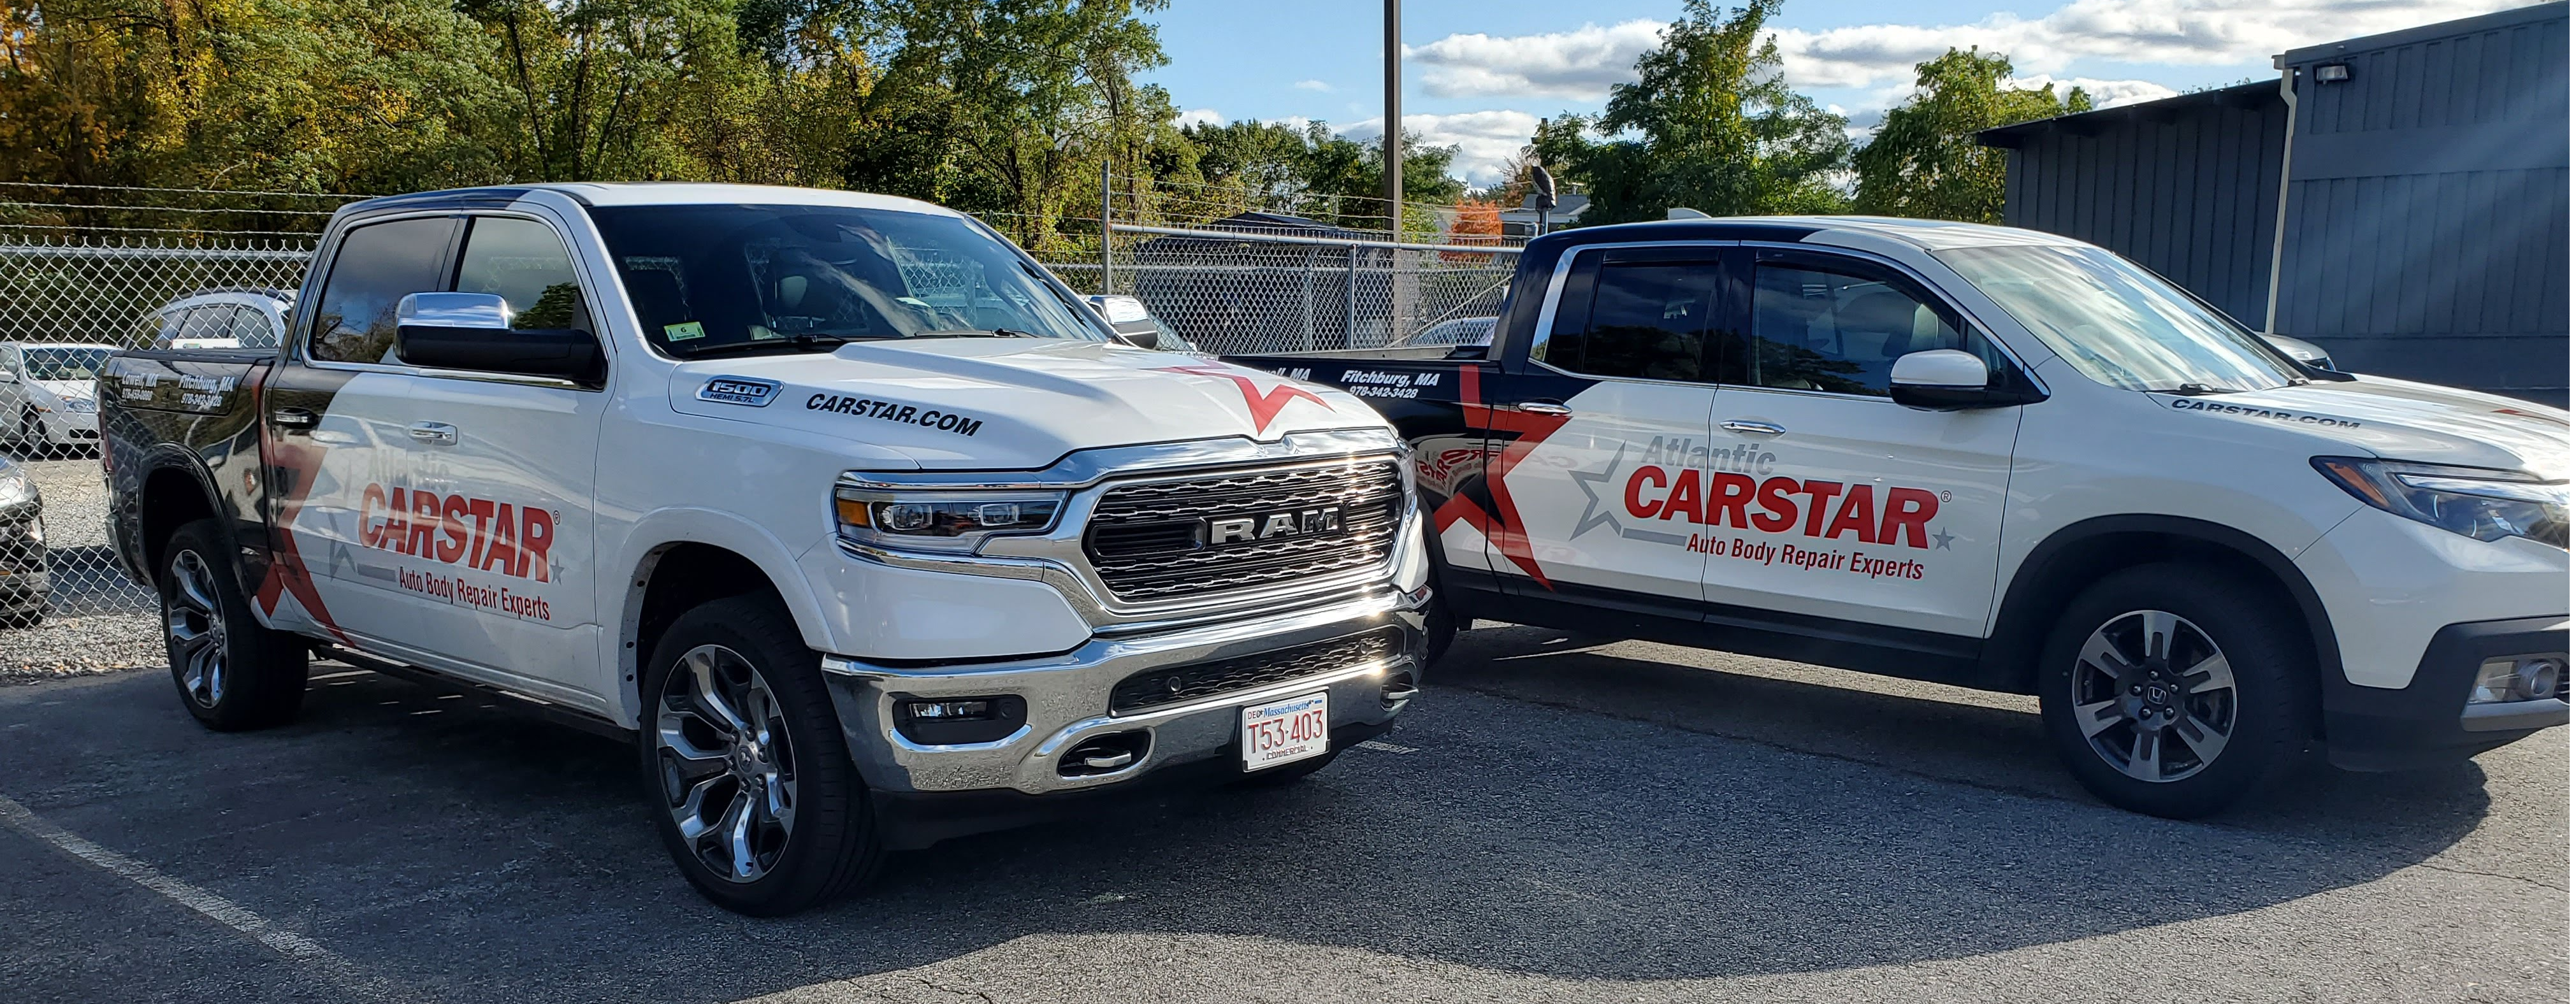 Auto Body, Shop, Autobody, CARSTAR, Collision, Repair, Certified, ASE, I-Car